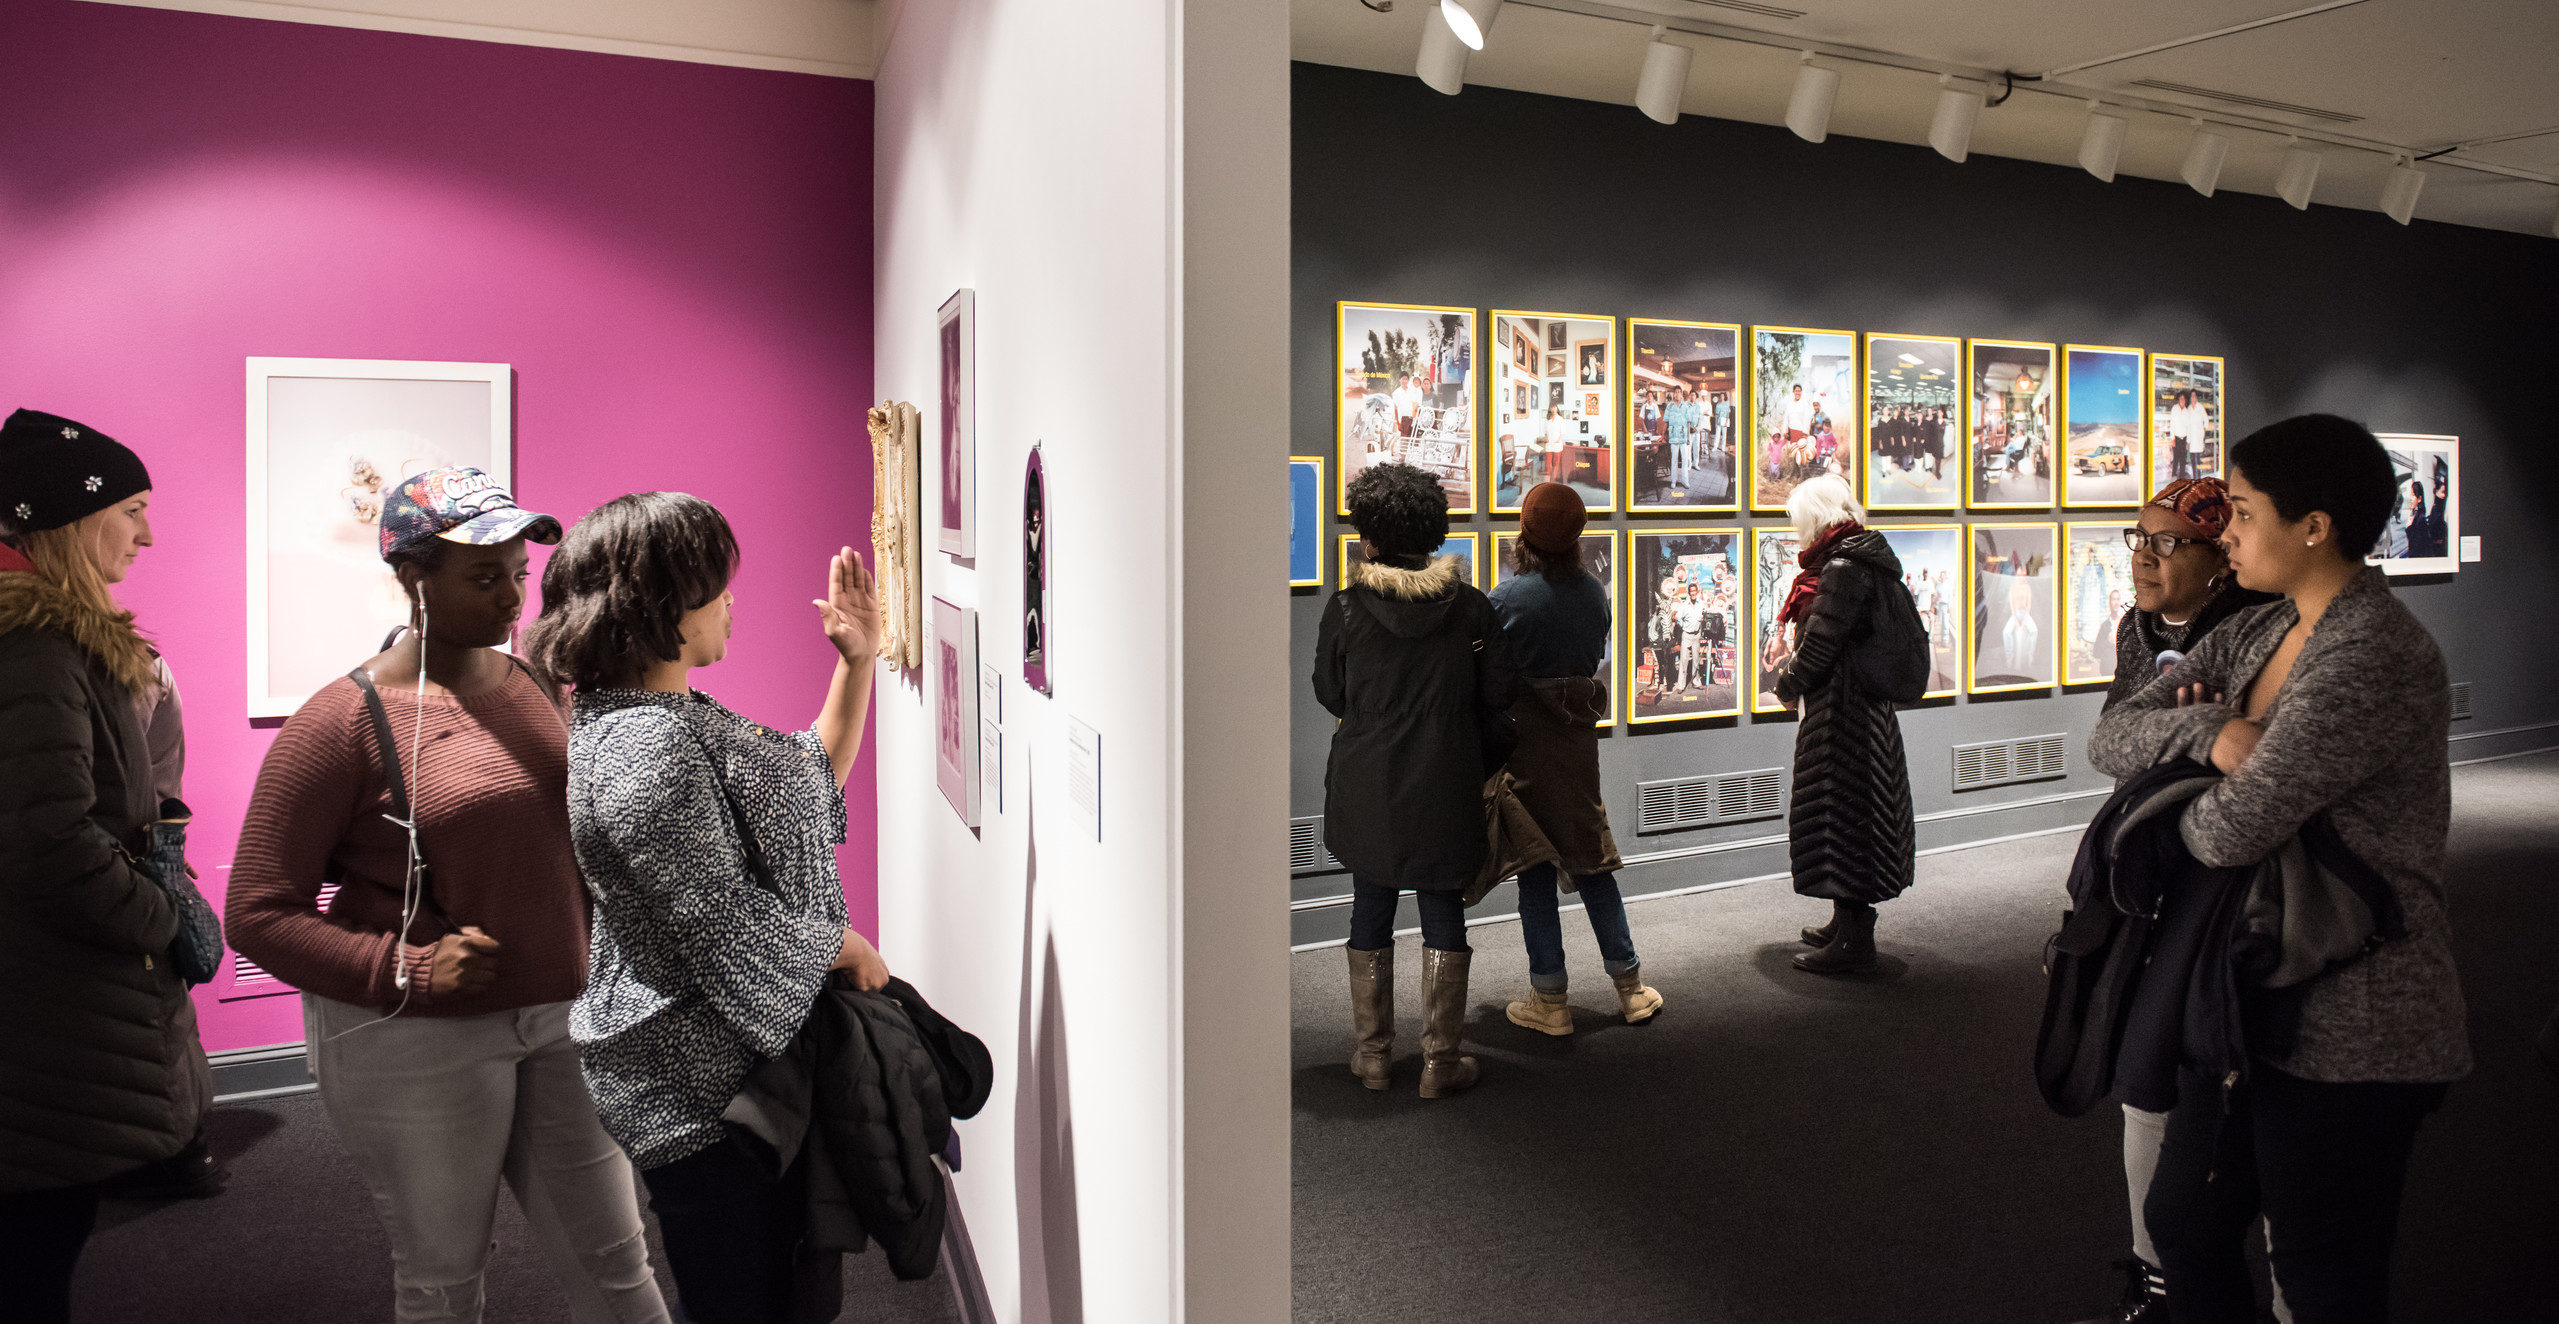 Eight diverse women museum visitors are scattered throughout the NMWA collection galleries browsing the art on the walls.